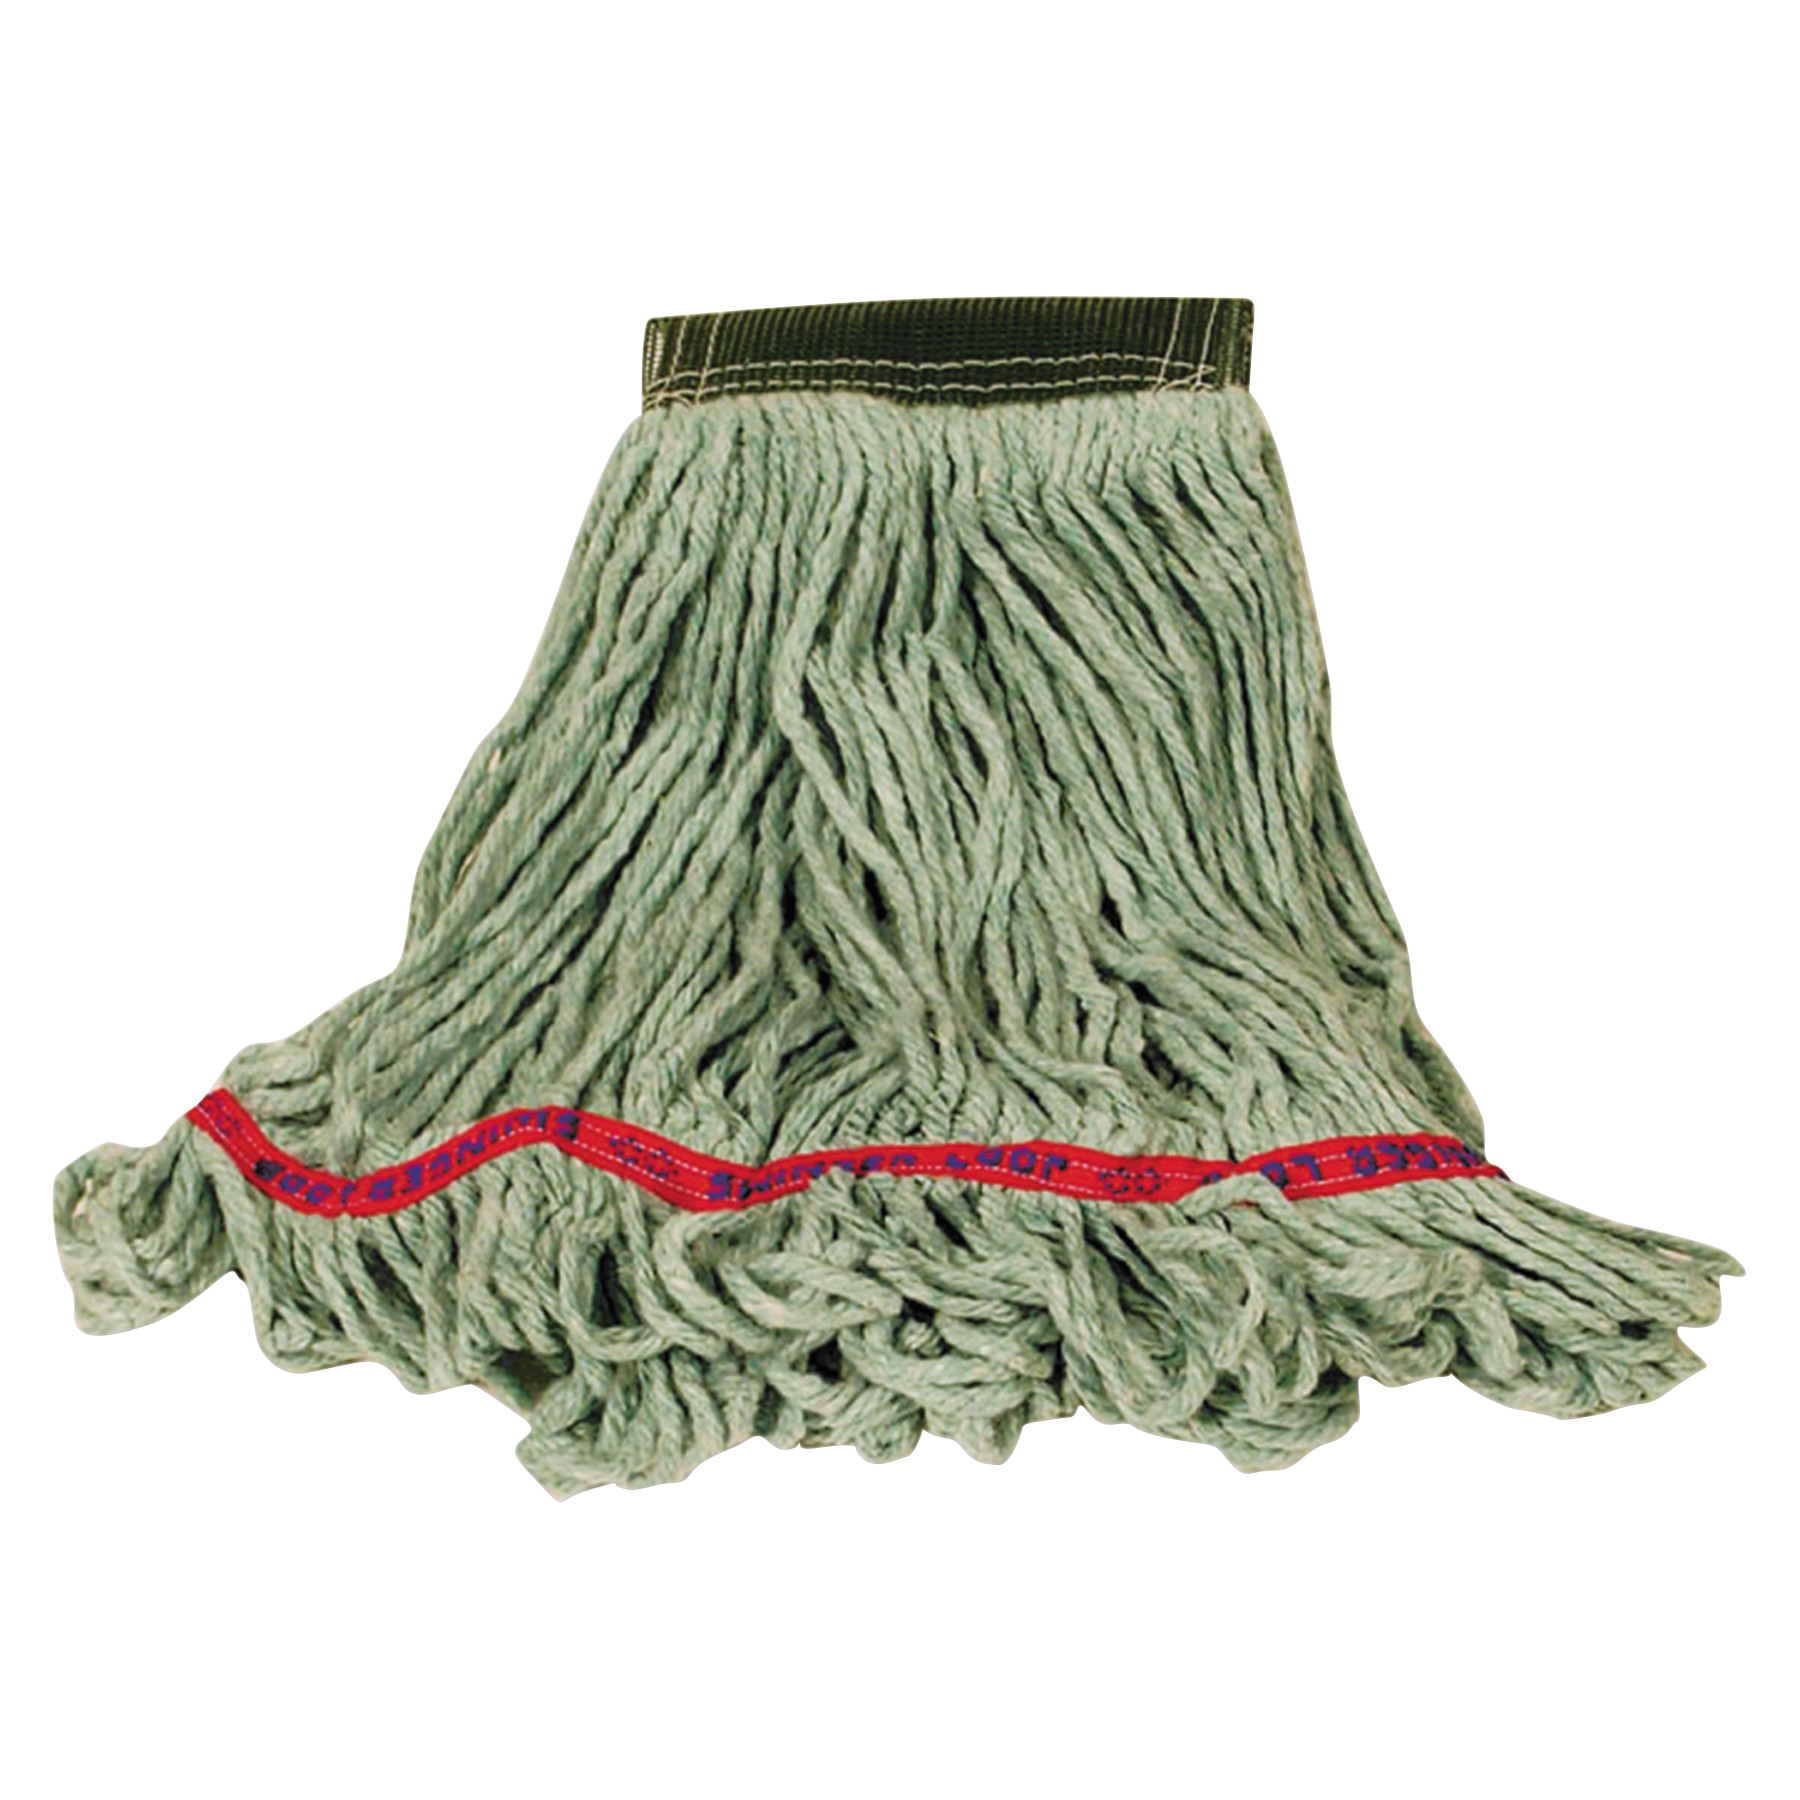 Rubbermaid Commercial Super Stitch Blend Mop, Cotton/Synthetic, Small, Green